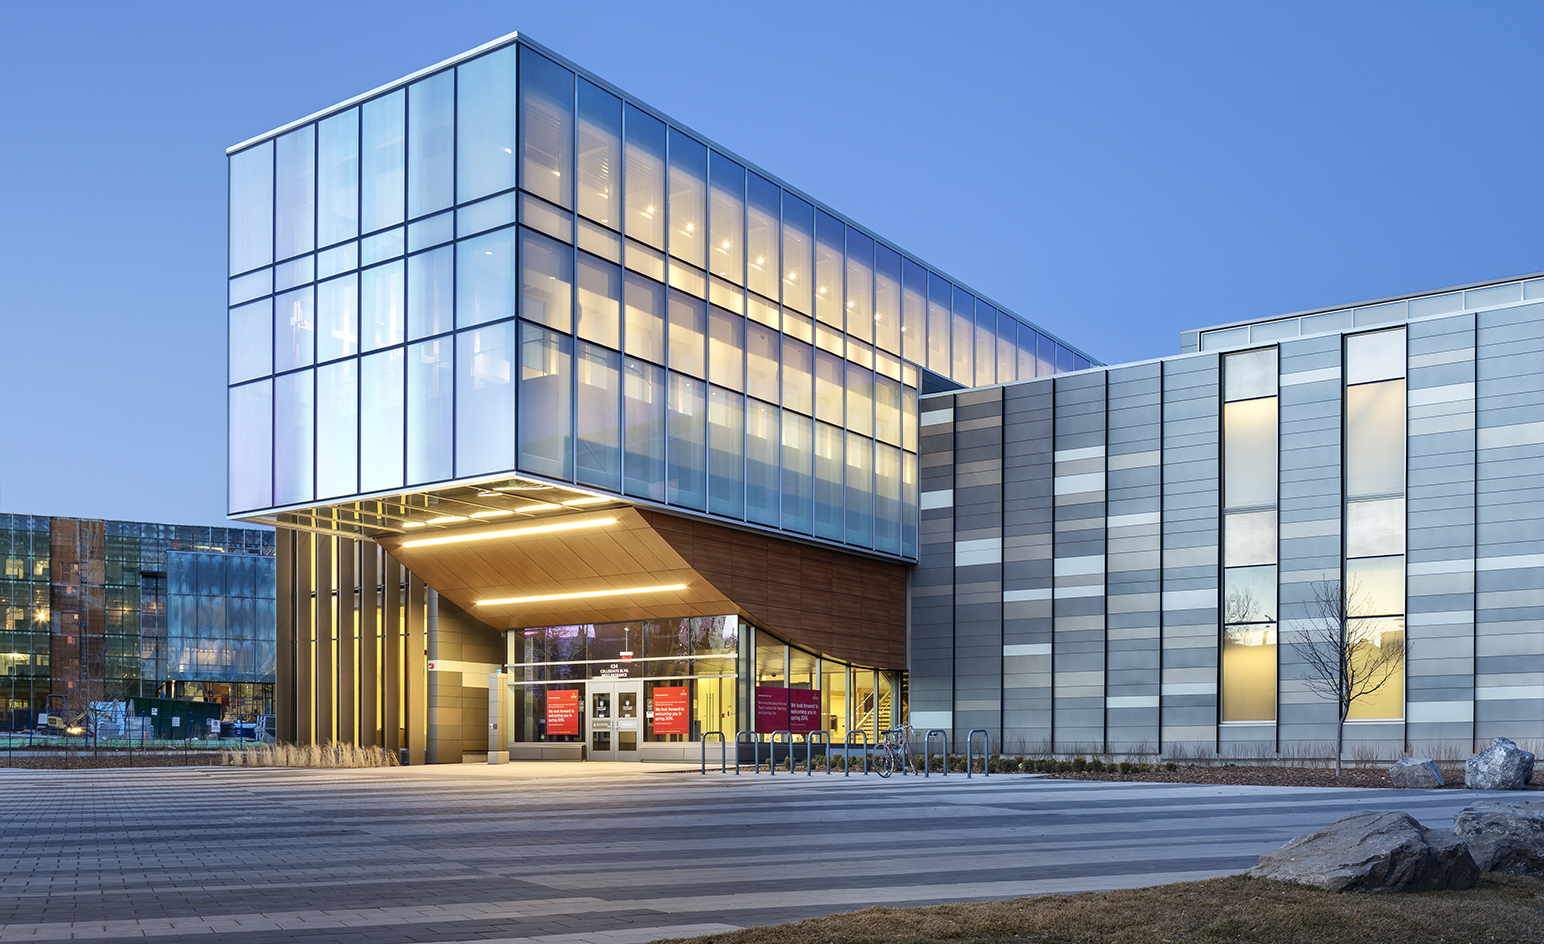 gallery architecture higher education campuses with elevated aesthetics